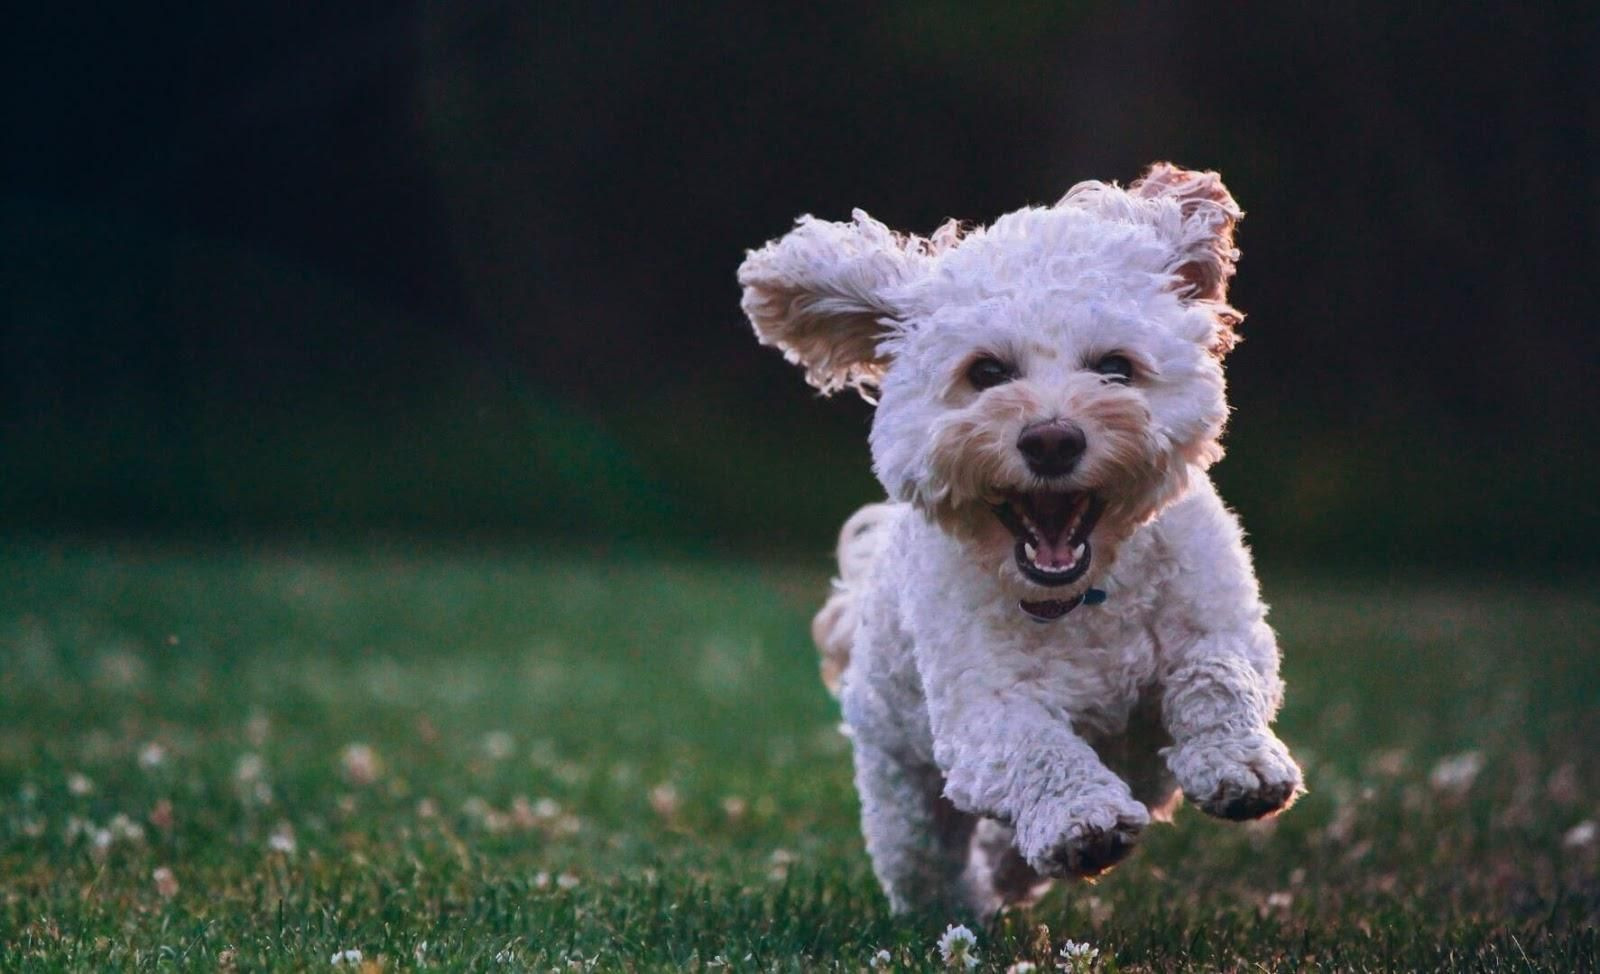 Picture of a small white dog running.